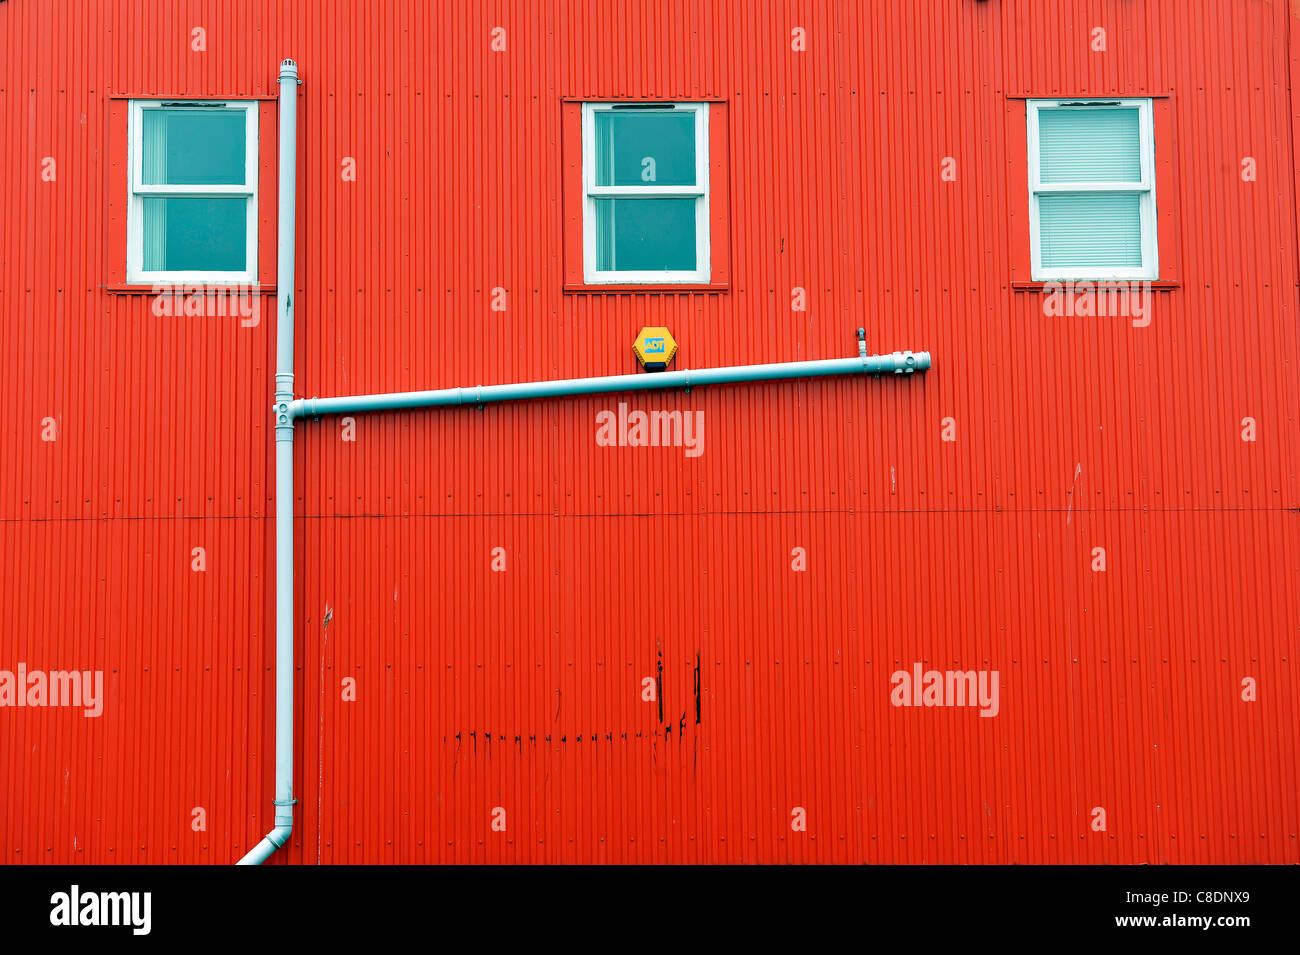 A drainpipe on the side of a red corrugated iron building in Lerwick, Shetland Islands, Scotland. - Stock Image